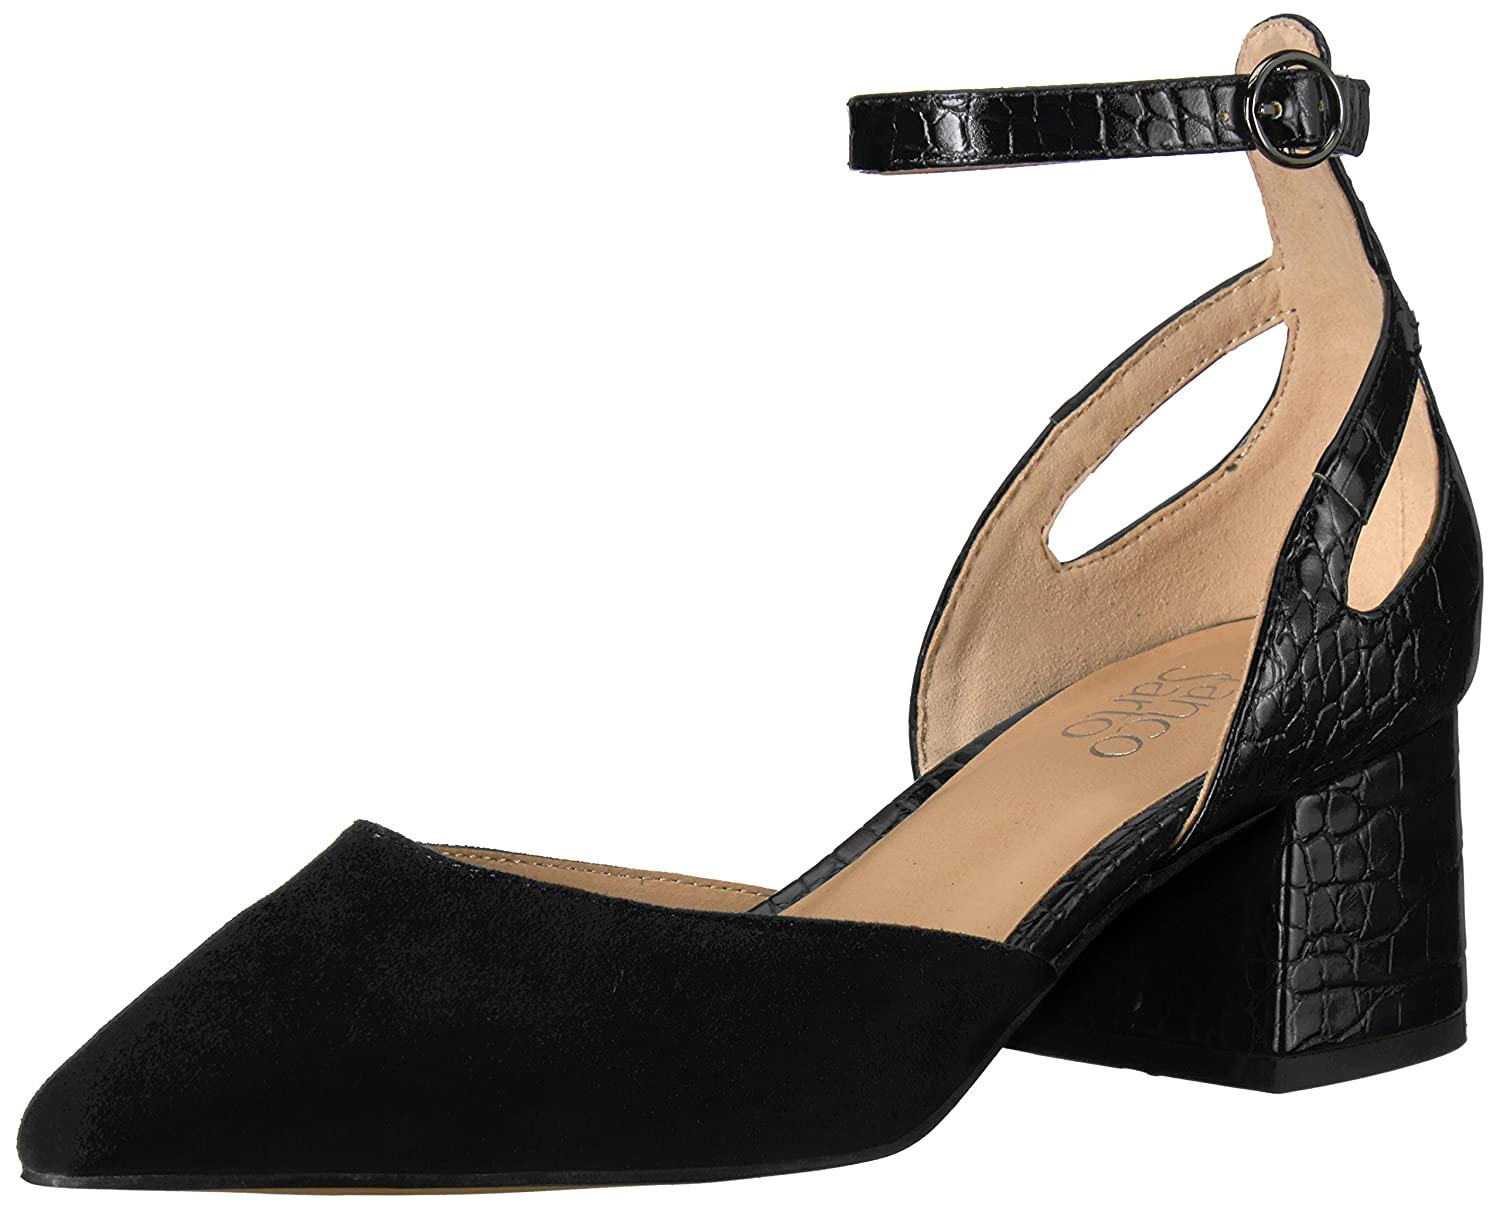 Franco Sarto Women's Caleigh Pump B06XSKW4XB 10 B(M) US|Black